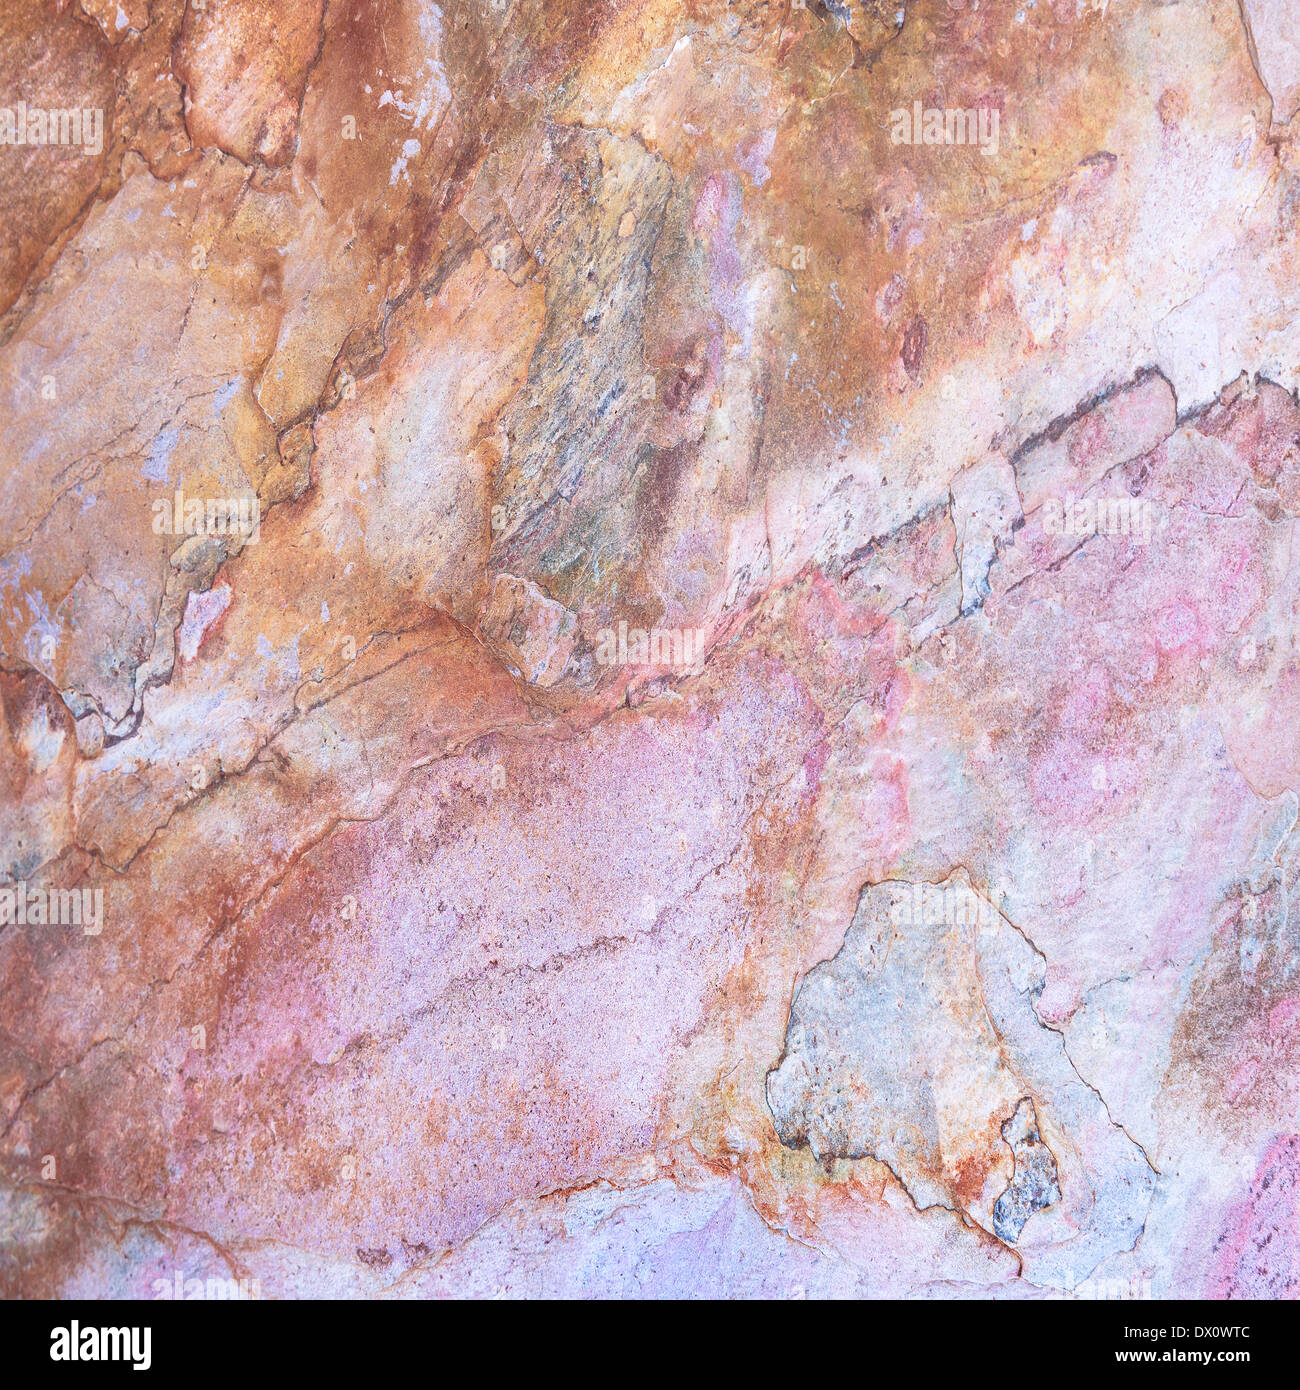 Good Wallpaper Marble Background - marble-background-light-pink-and-orange-colors-pattern-textured-wallpaper-DX0WTC  Collection_483533.jpg